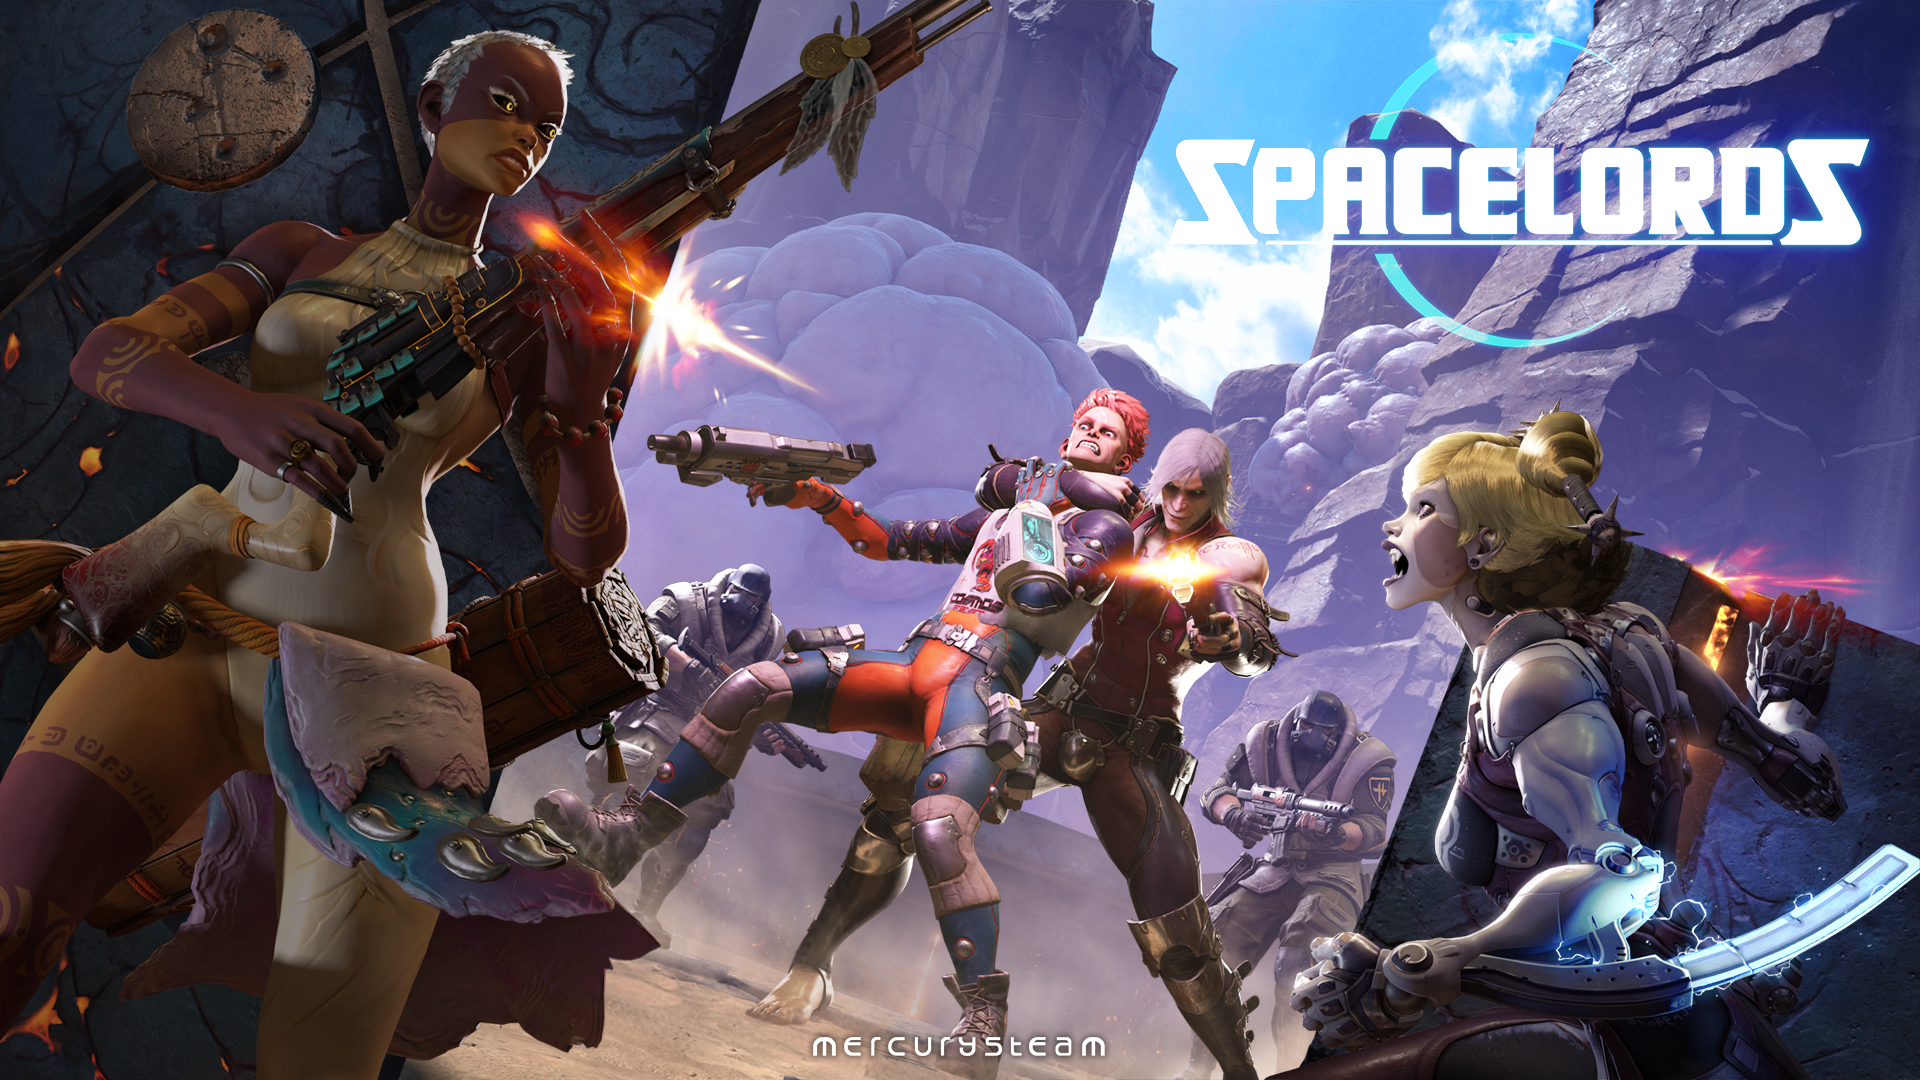 2d344fae686 MercurySteam Working with SIE to Enable Full Cross-Play in Spacelords  Will  Soon Provide an Update